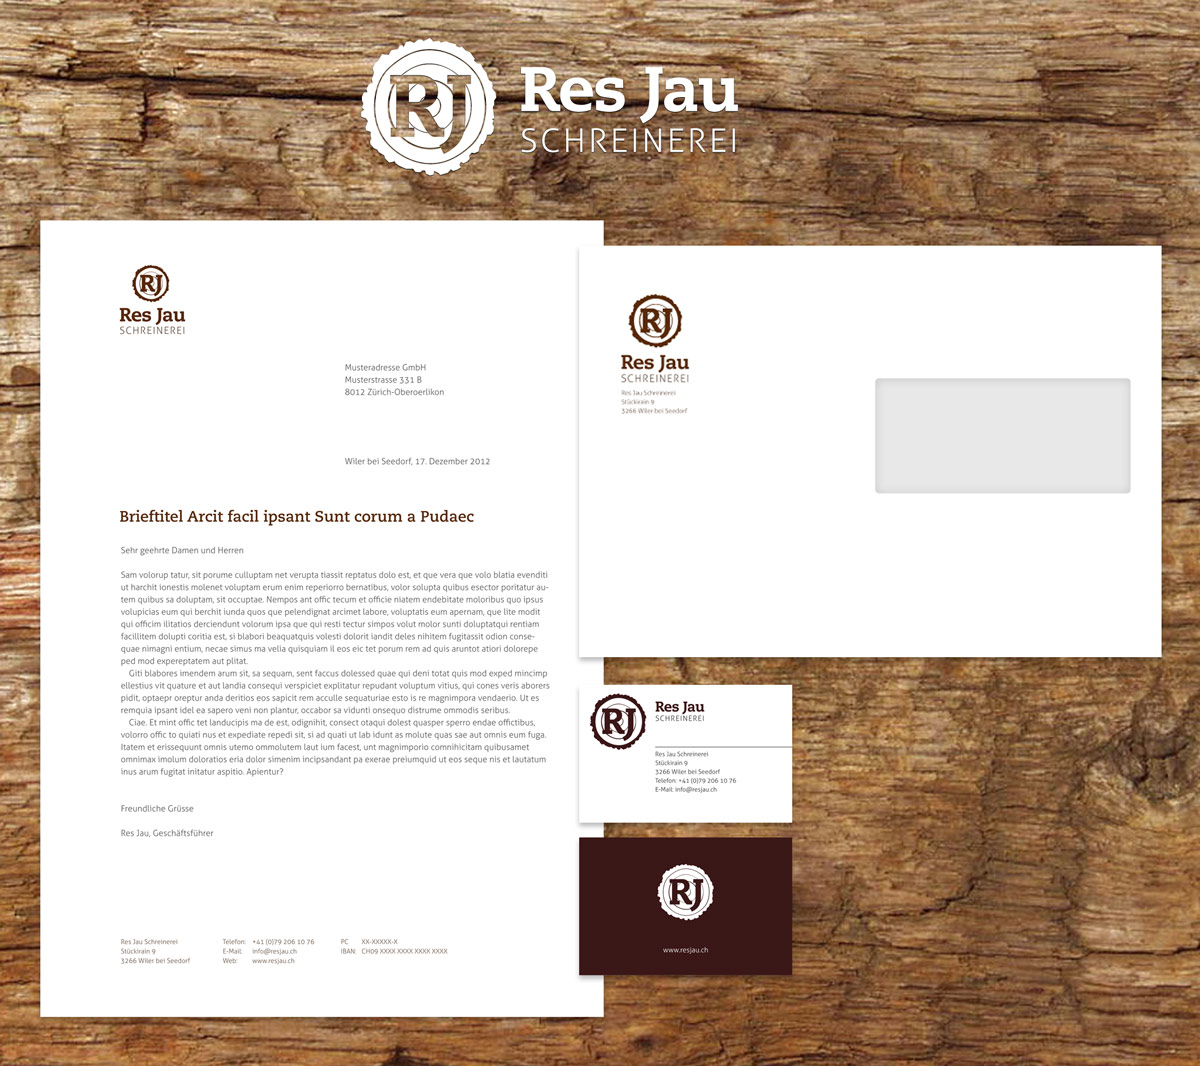 resjau_corporate-design_showcase